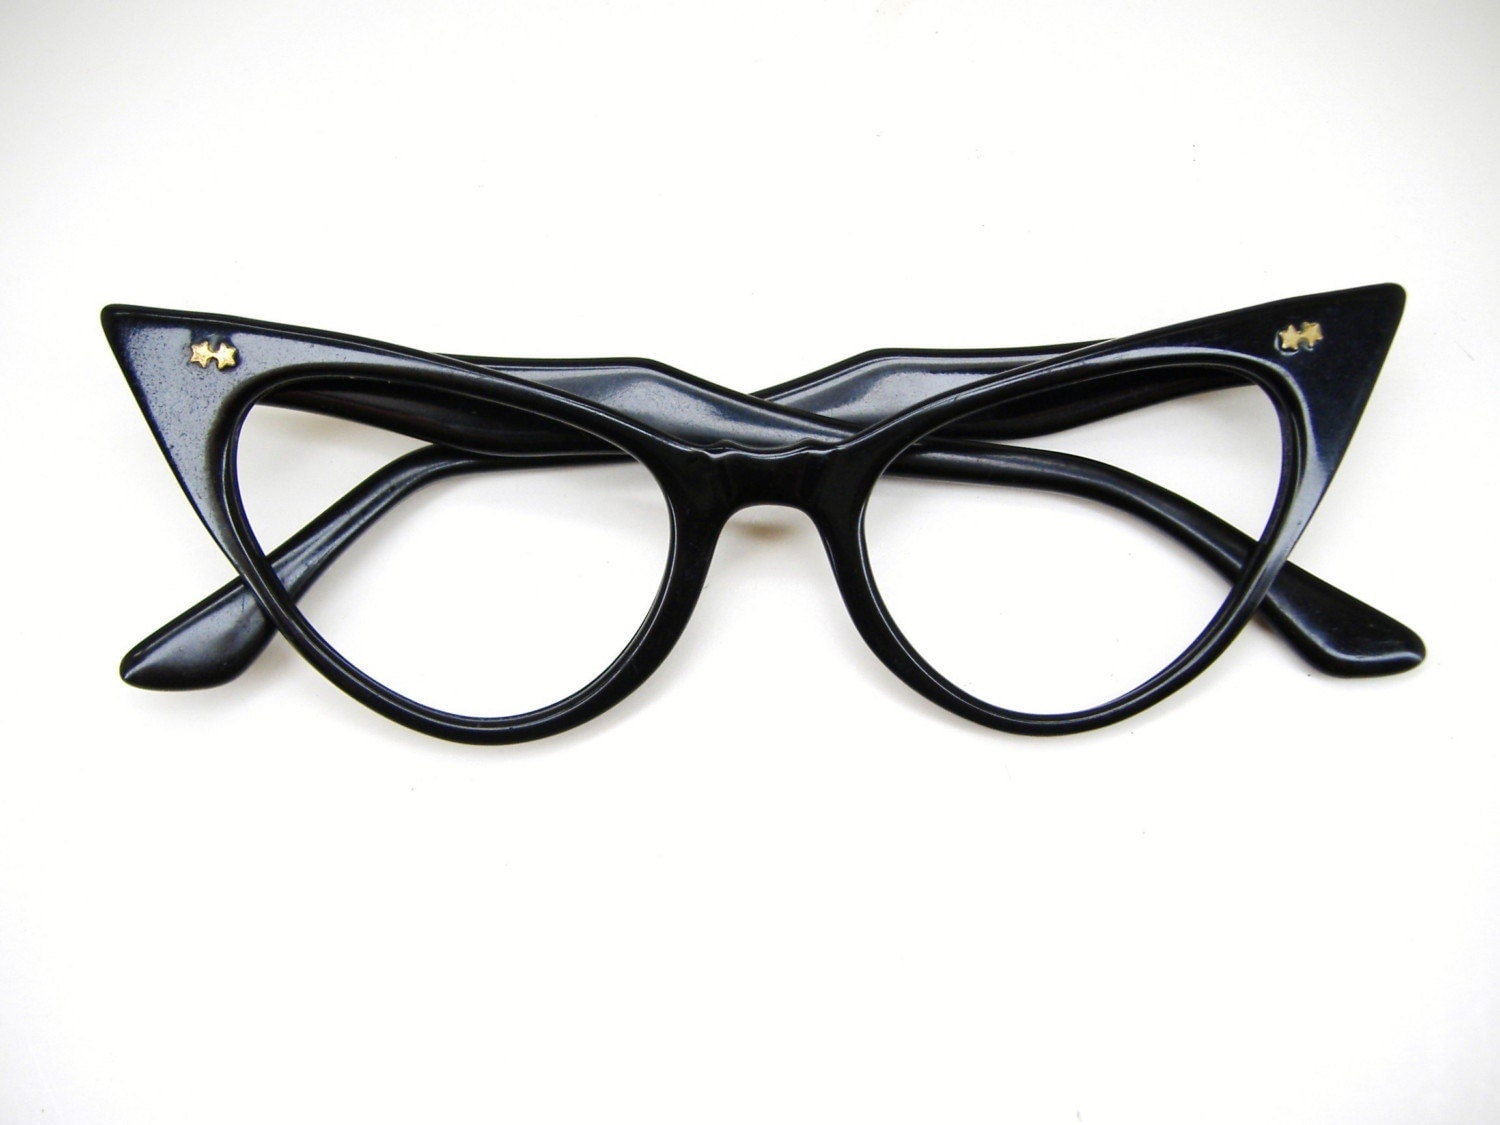 Cat Eye Frame Eye Glasses : RESERVED Wicked Black Cat Eye Eyeglasses Frame FREE SHIPPING